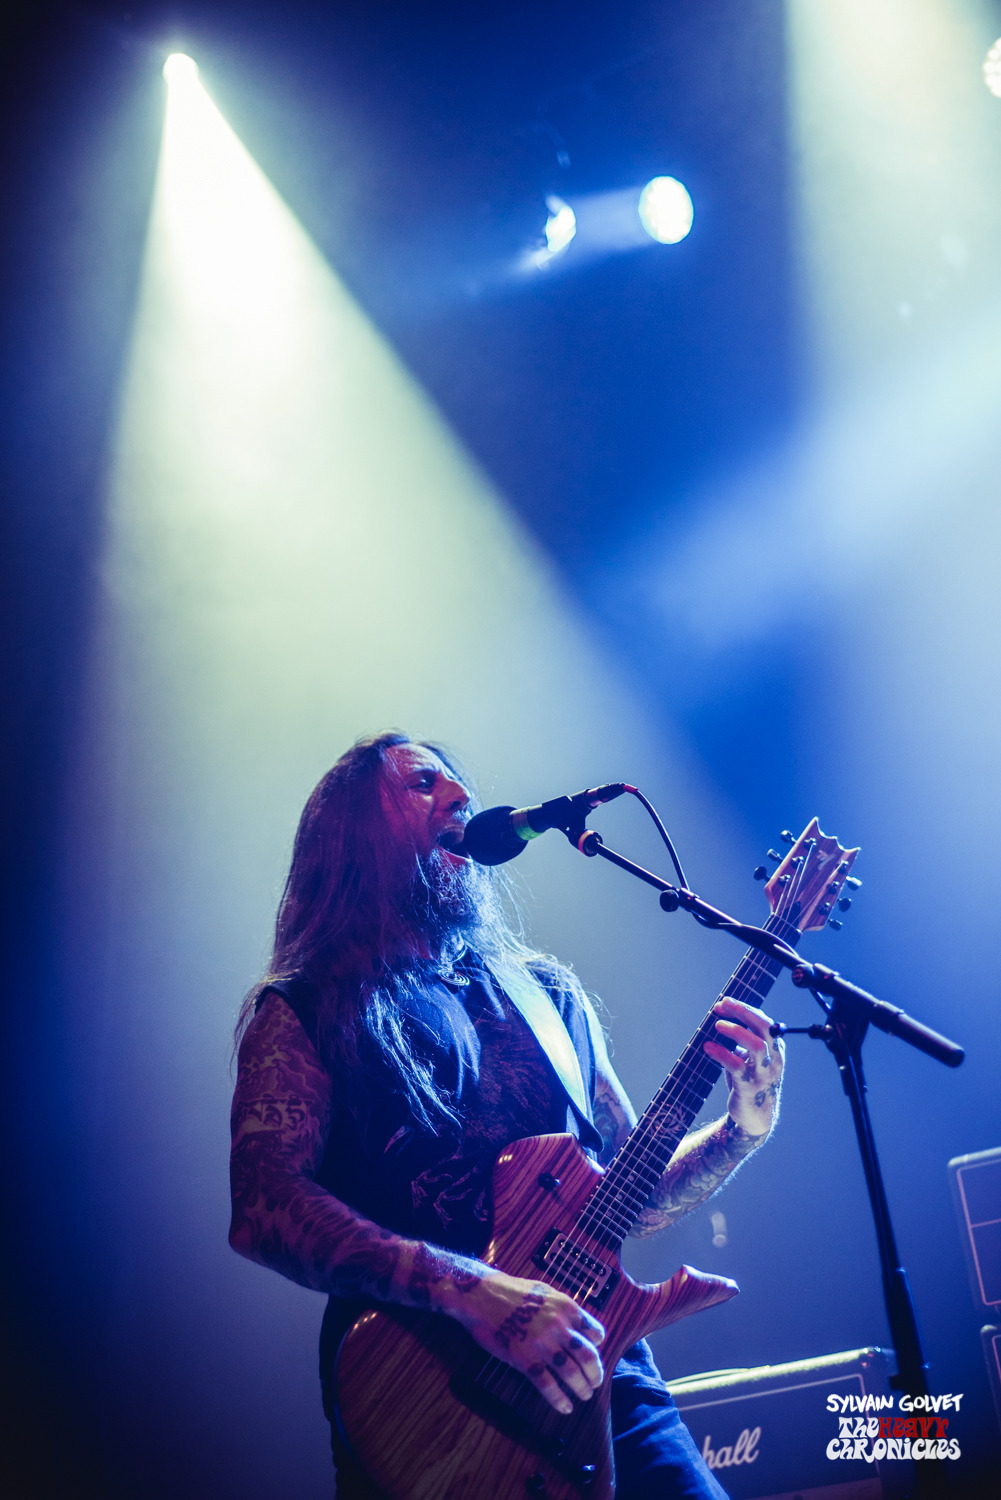 YOB-BATACLAN-THE-HEAVY-CHRONICLES-180719-3